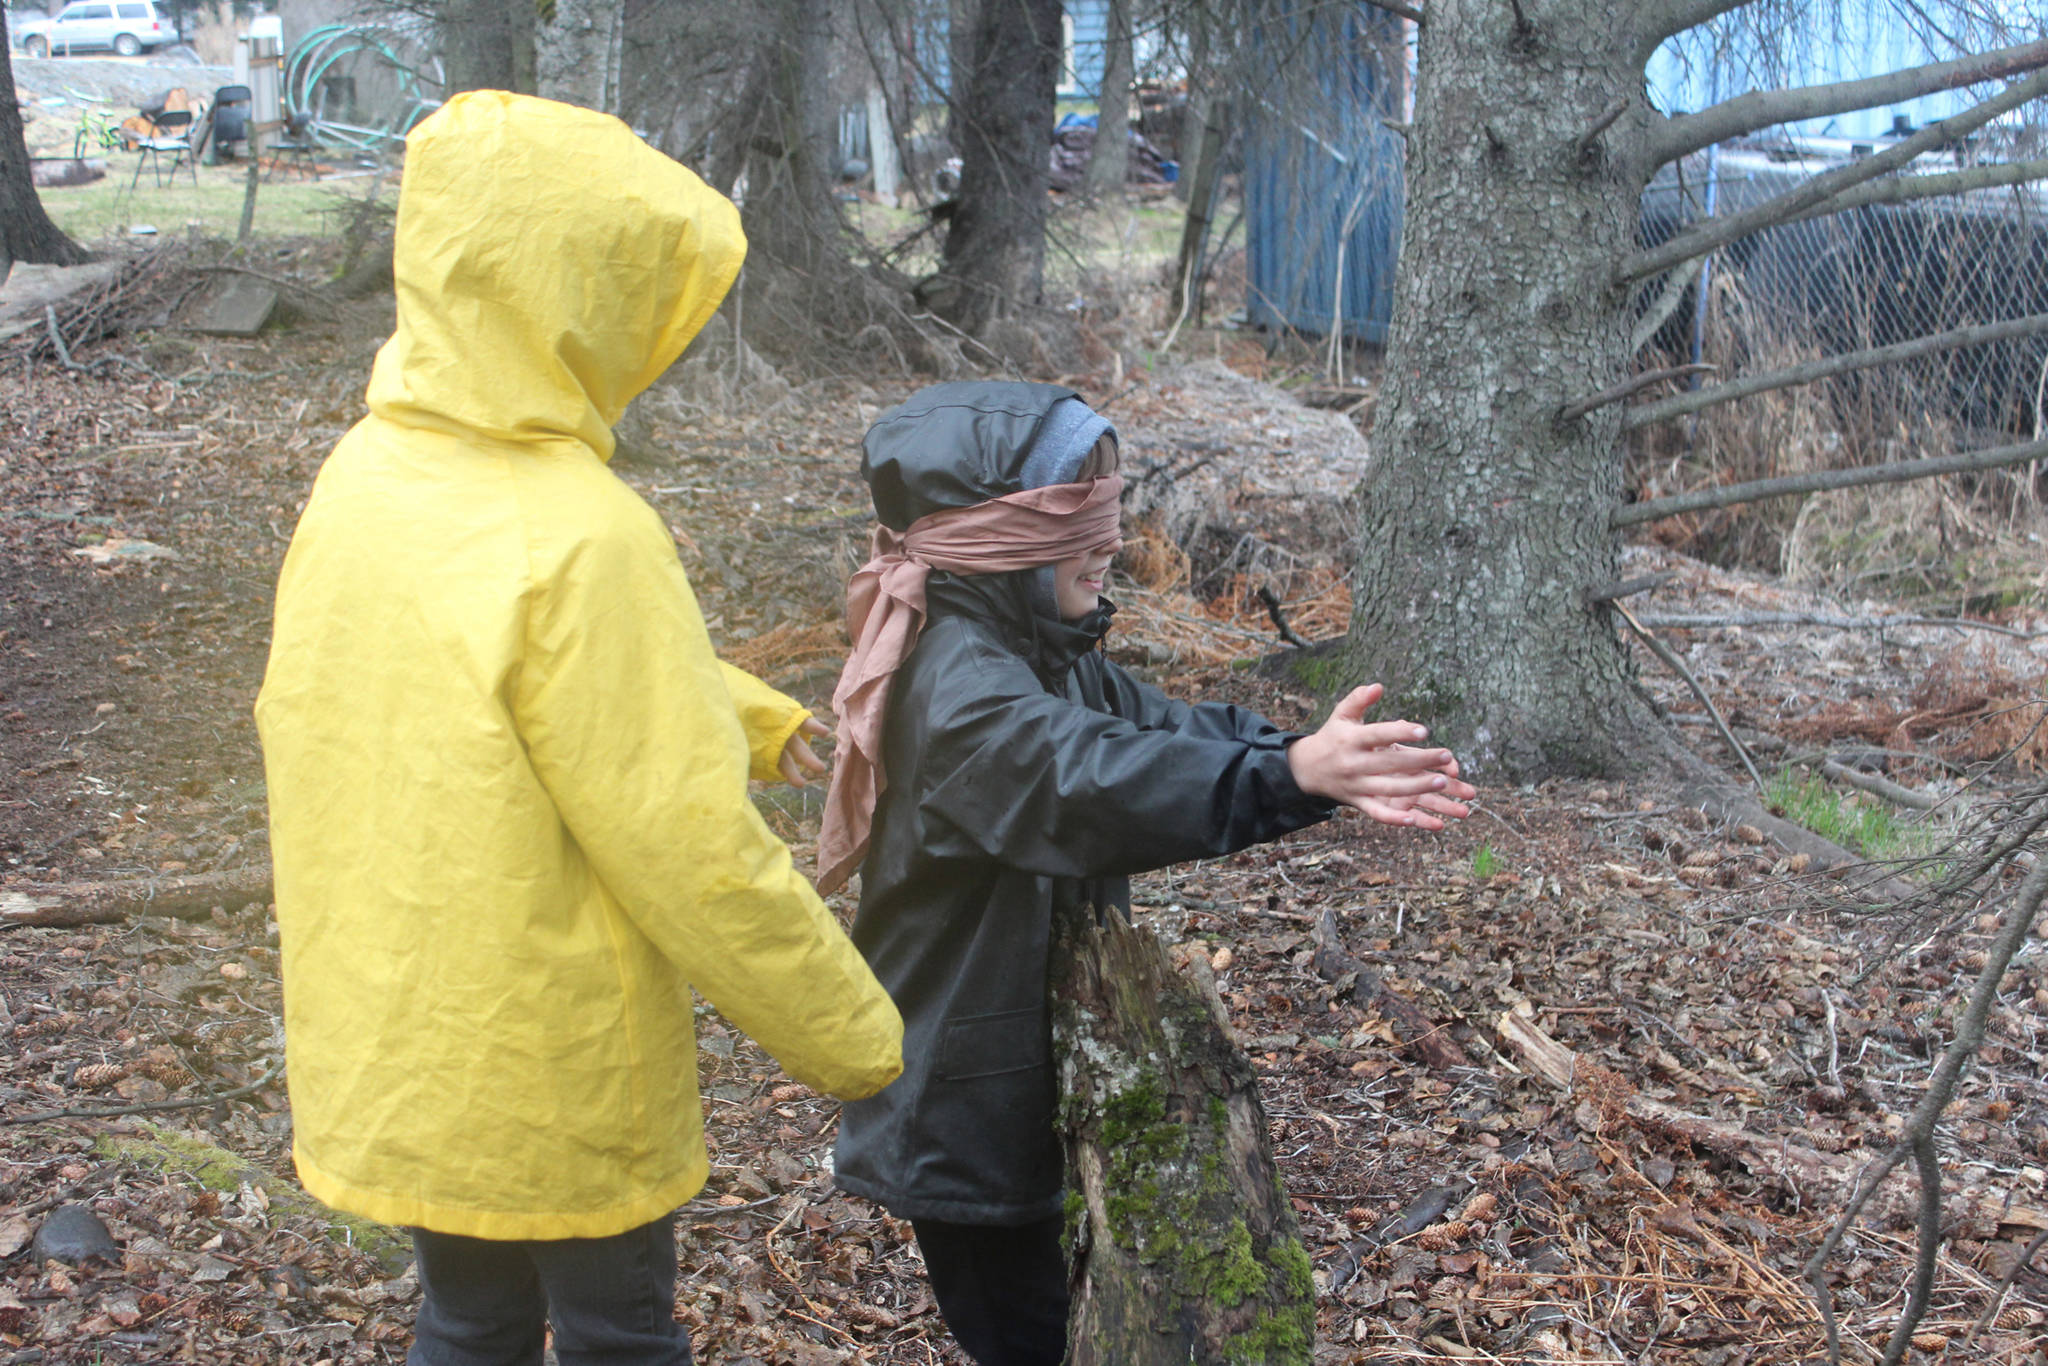 """Charles Robinette, left, leads classmate Fox Strobel through the woods behind Little Fireweed Academy while Strobel is blindfolded during a game called """"Sneaky Sneaky Squirrel"""" on Tuesday, April 24, 2018 at the school in Homer, Alaska. The Fireweed students are participating in several outdoor games and lessons through a mentorship program with Homer High School students. (Photo by Megan Pacer/Homer News)"""